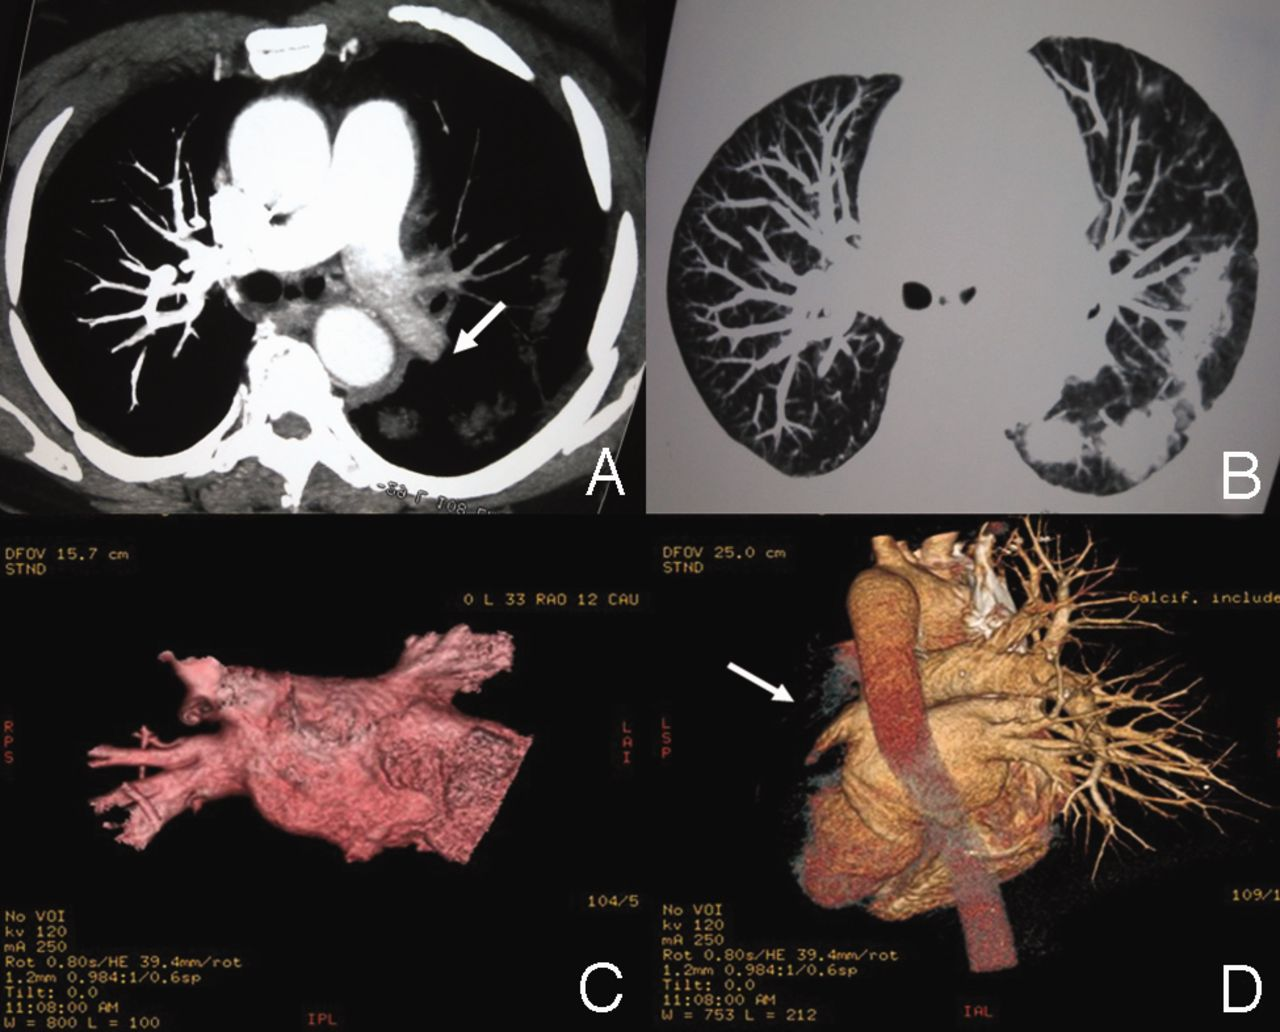 Pulmonary-Vein Stenosis Can Mimic Massive Pulmonary Embolism After Radiofrequency Ablation for Atrial Fibrillation   Respiratory Care